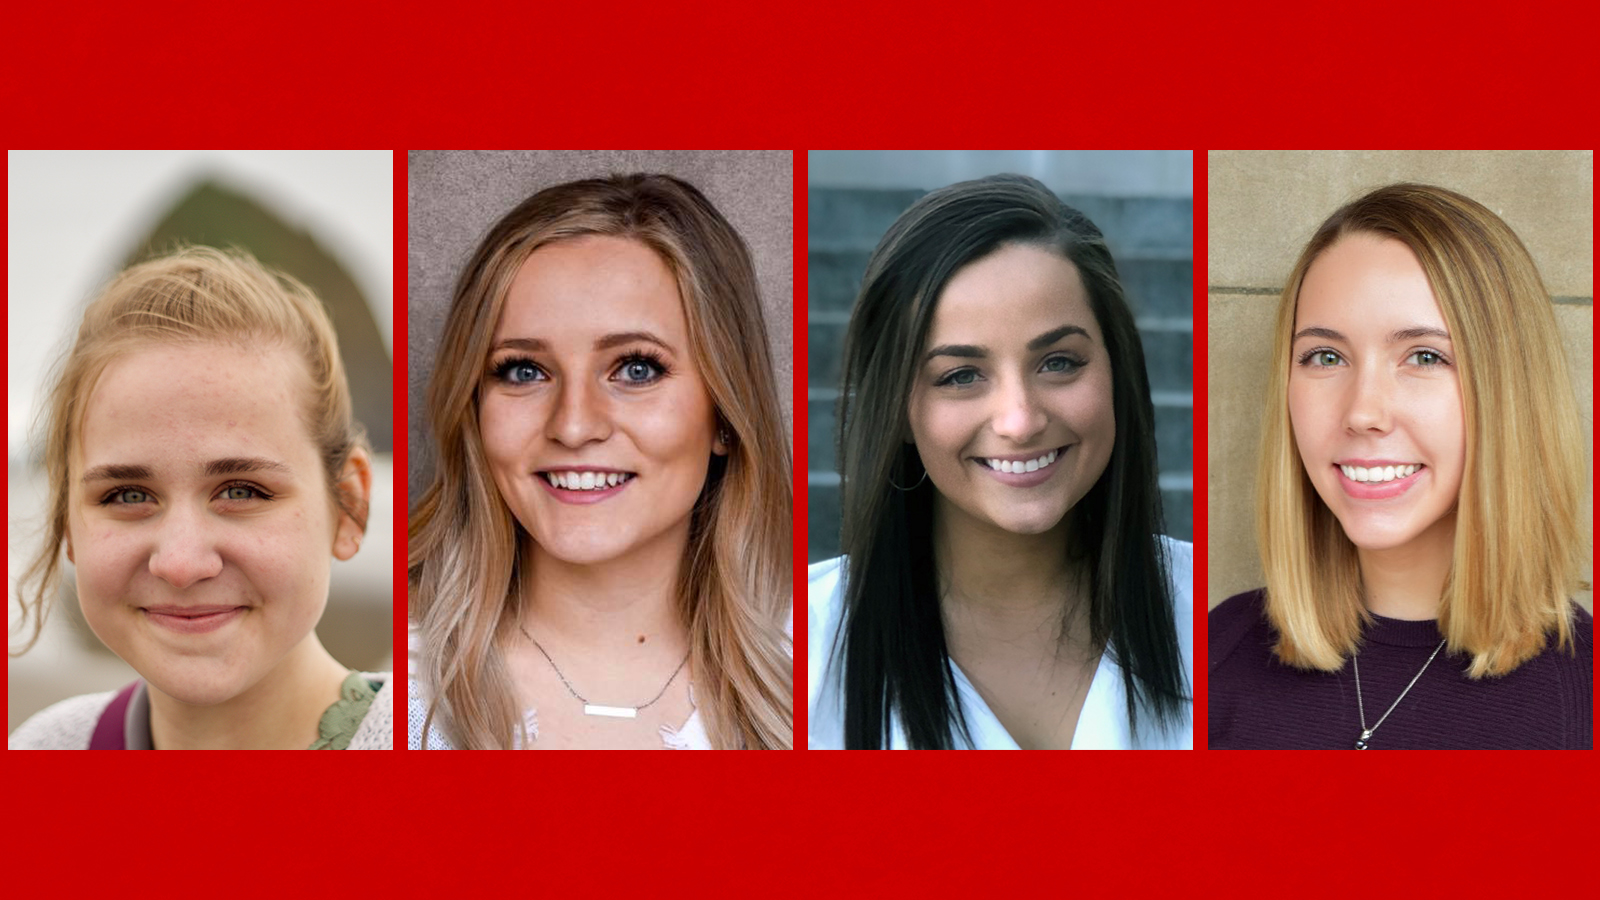 Emily Grybas, Macey Mathis, Madi Thielen and Jenna Van Bosch are among the students graduating with bachelor's degrees in communication sciences and disorders from the University of Nebraska-Lincoln during the commencement ceremony Dec. 21, 2019.